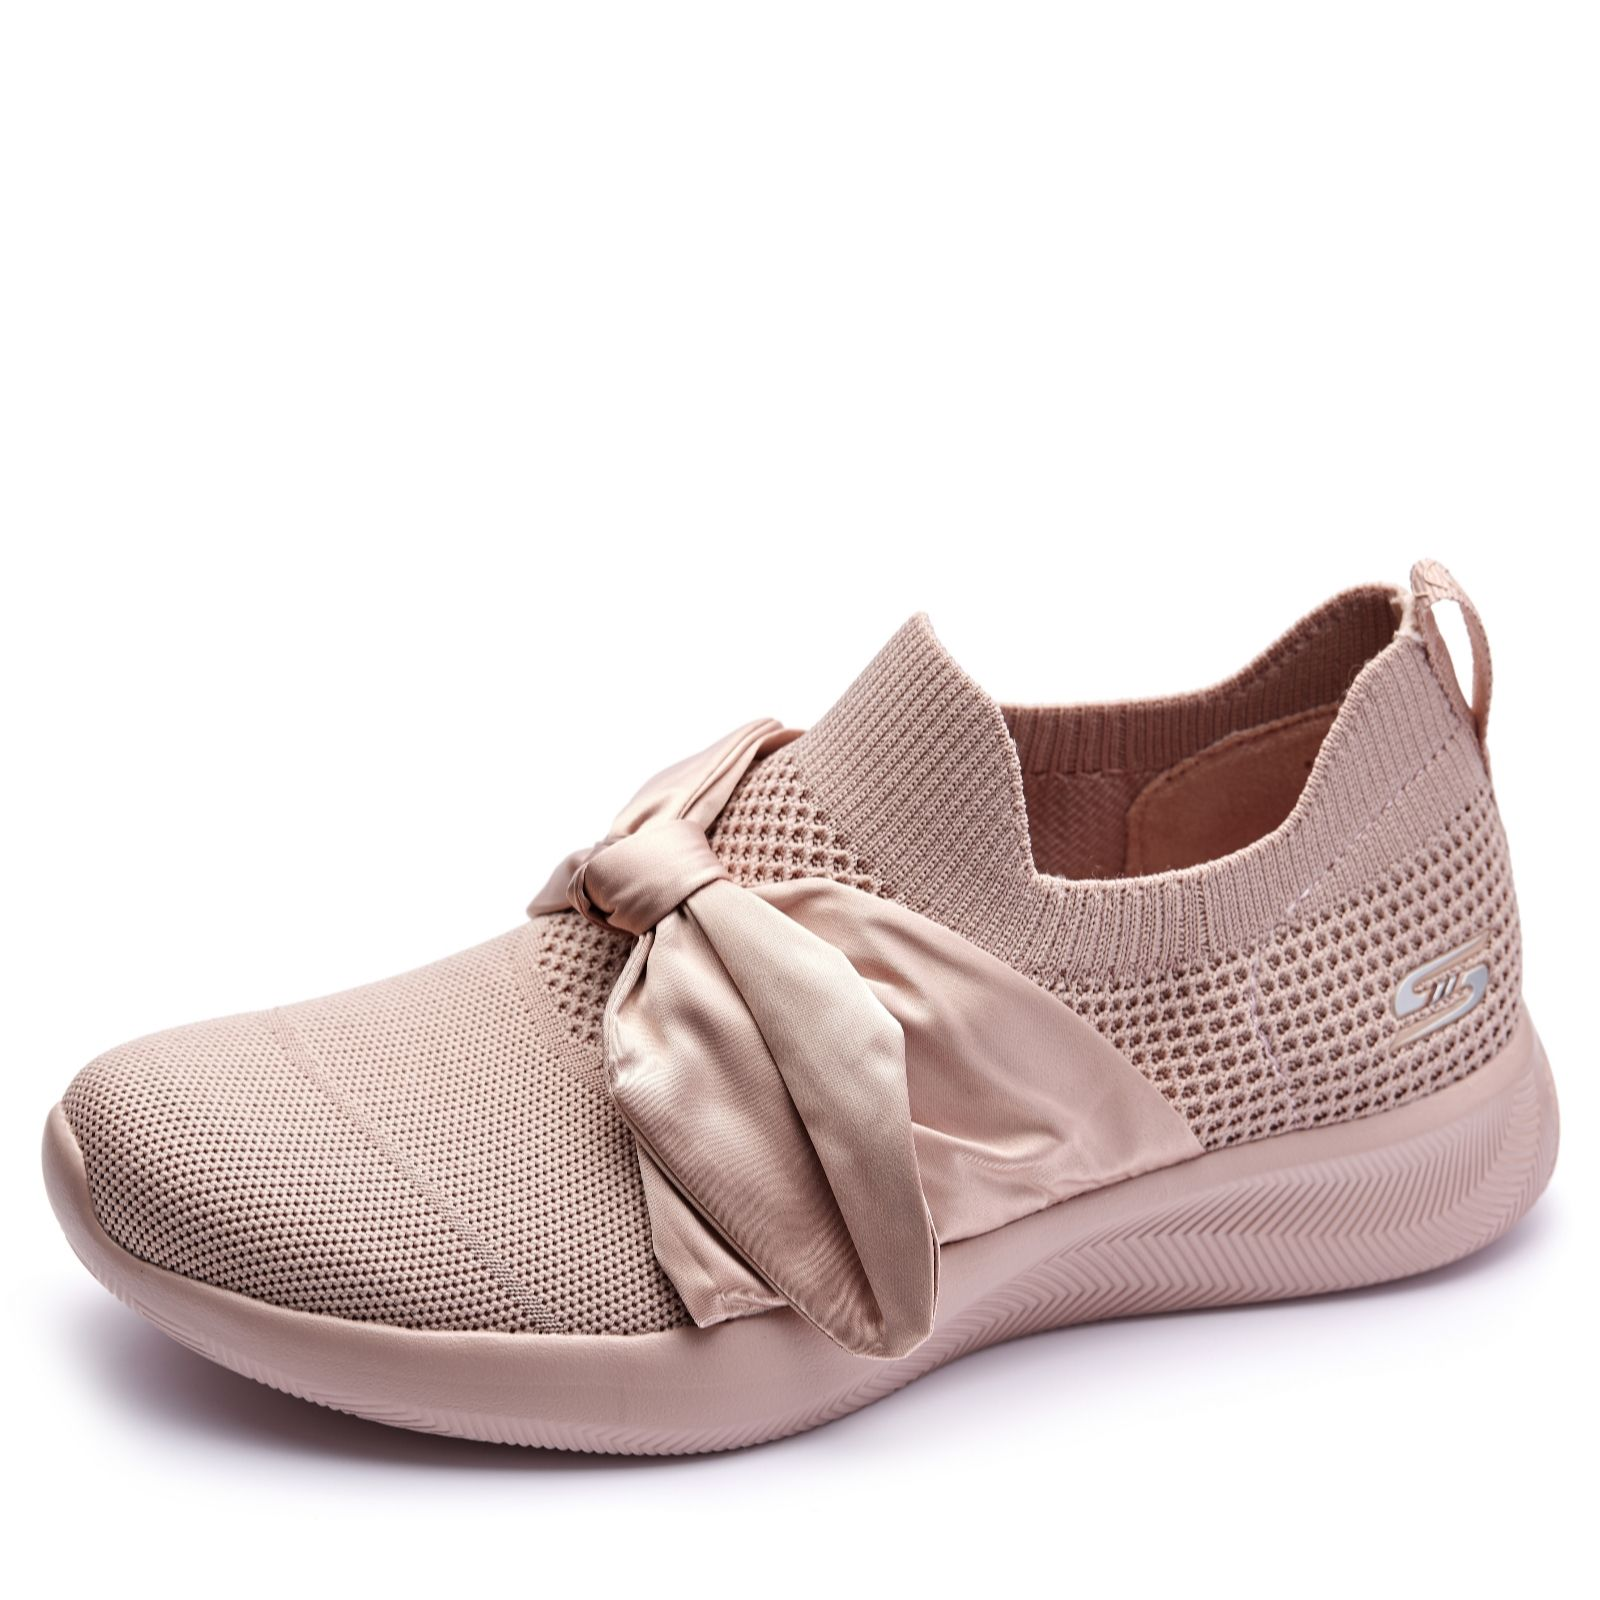 Skechers Bobs Squad 2 Bow Beauty Slip on Trainer QVC UK